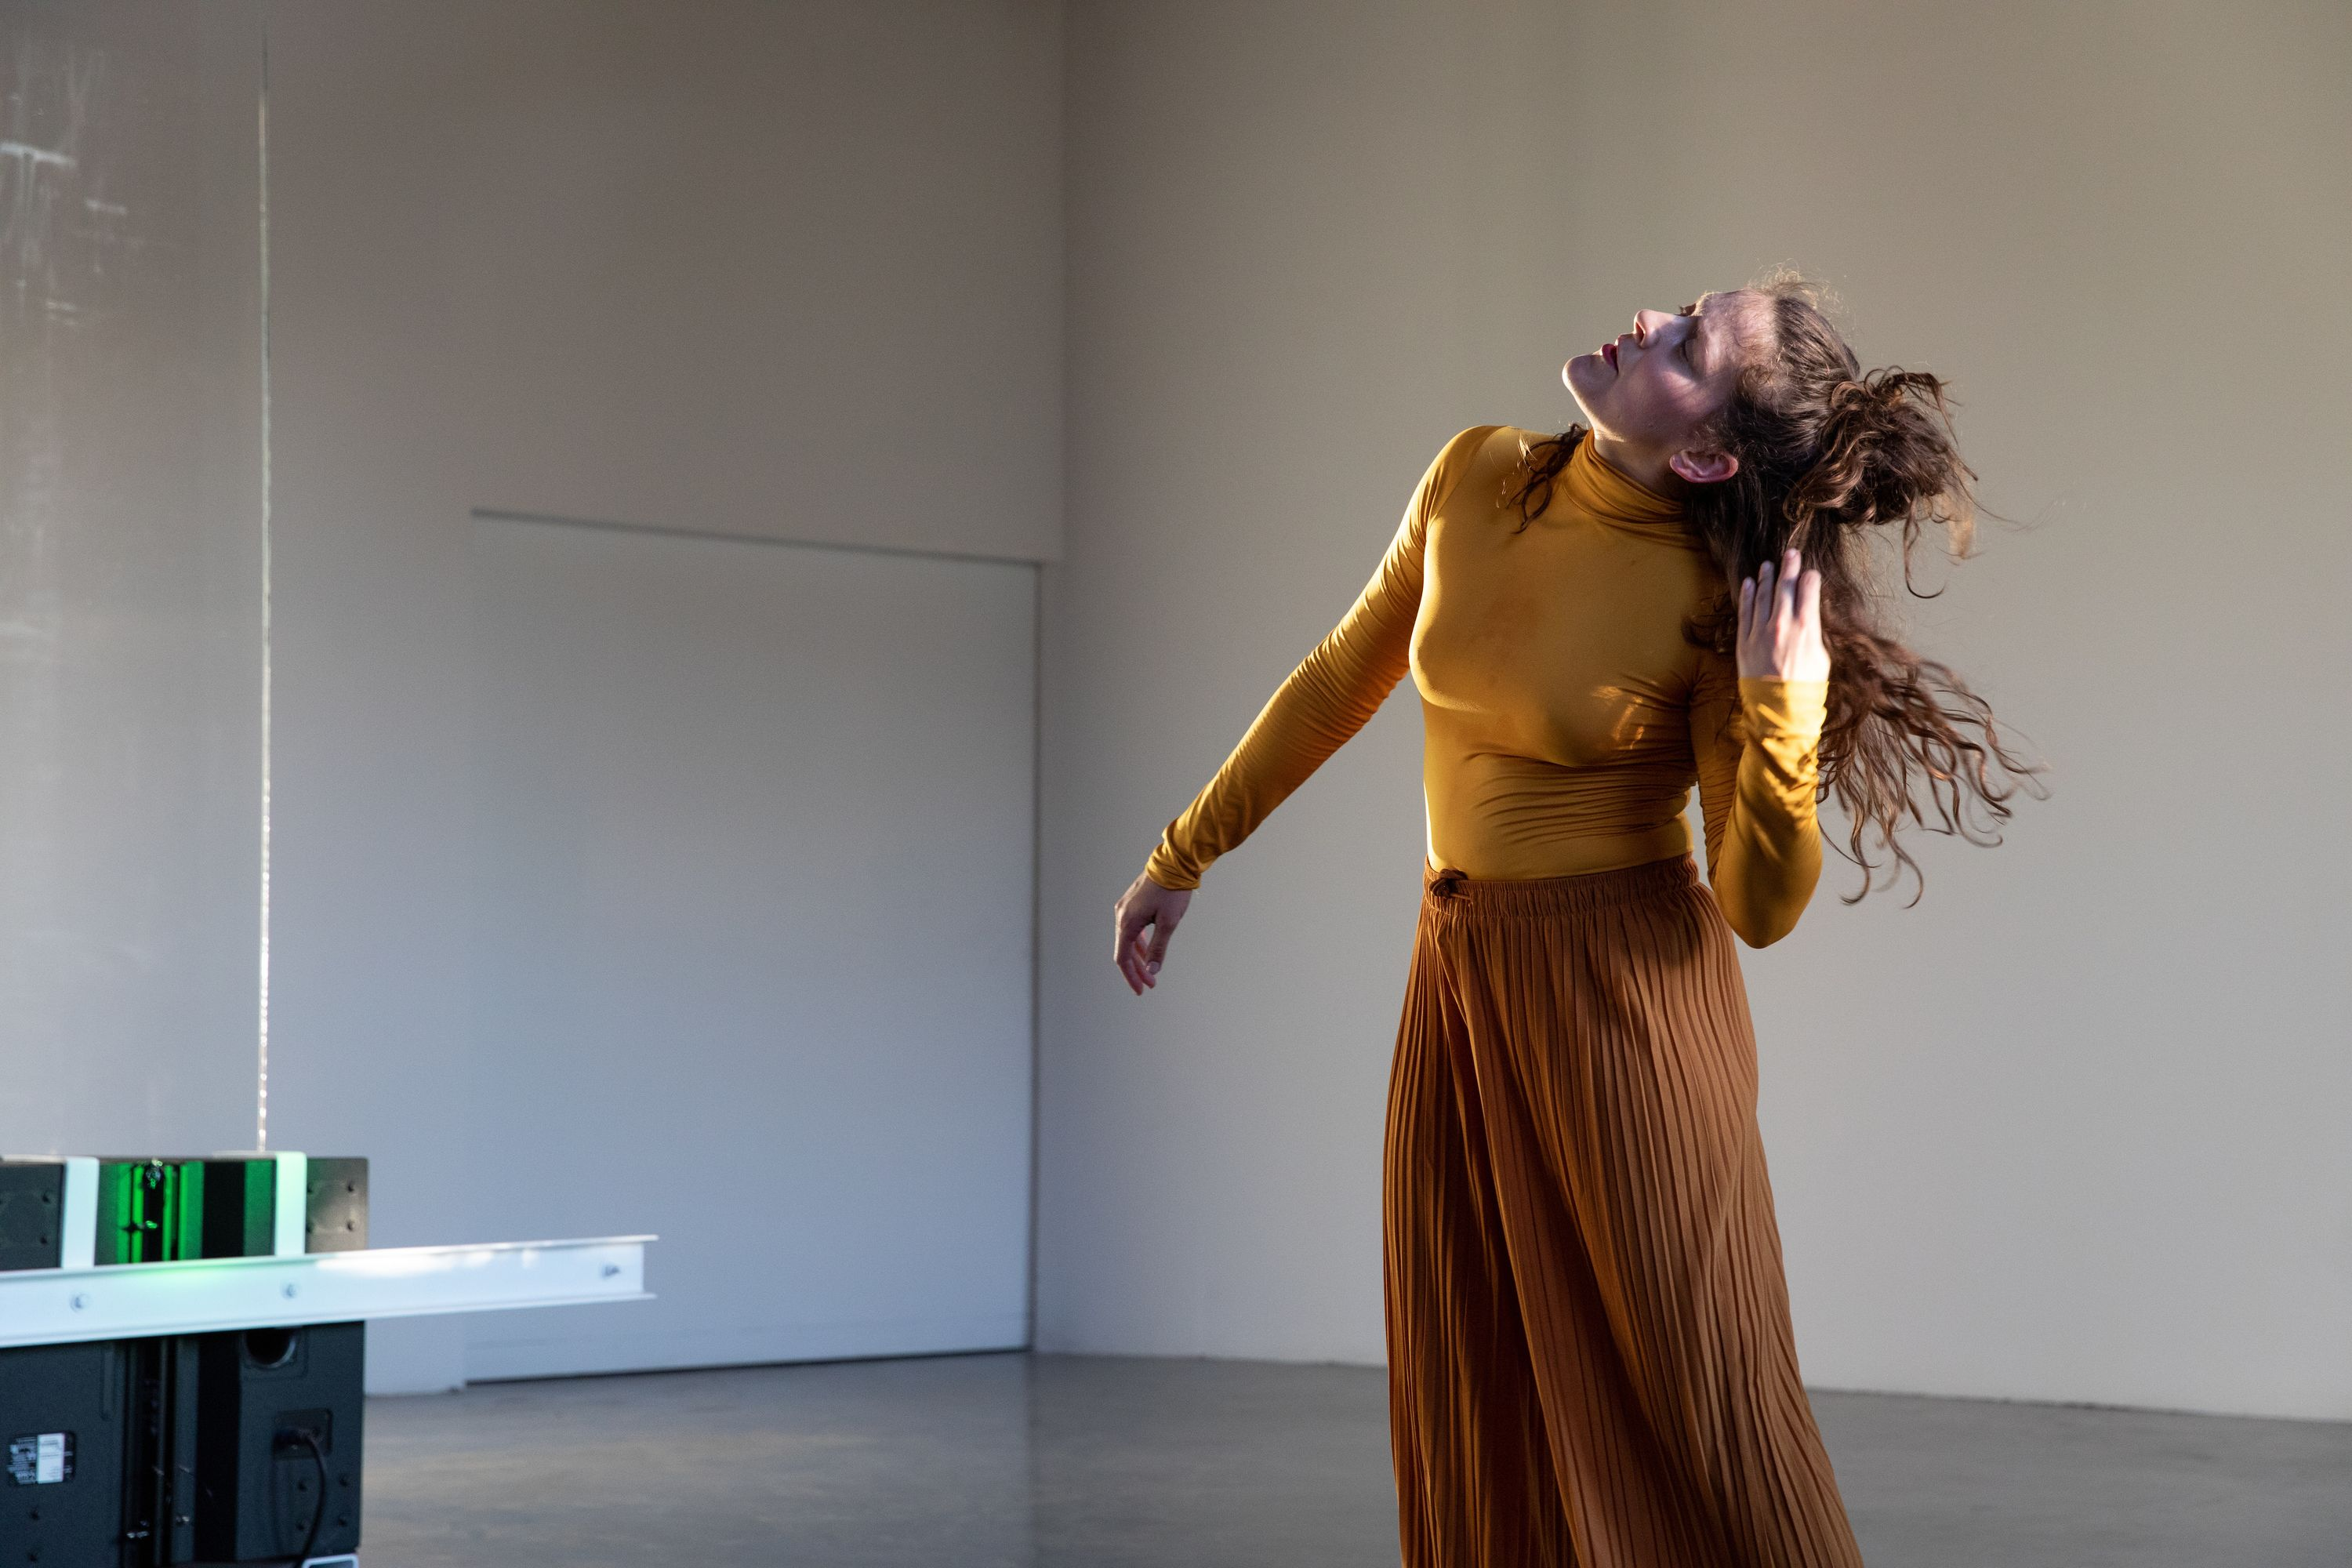 A woman in yellow pulls at her hair, her head craned to her right.